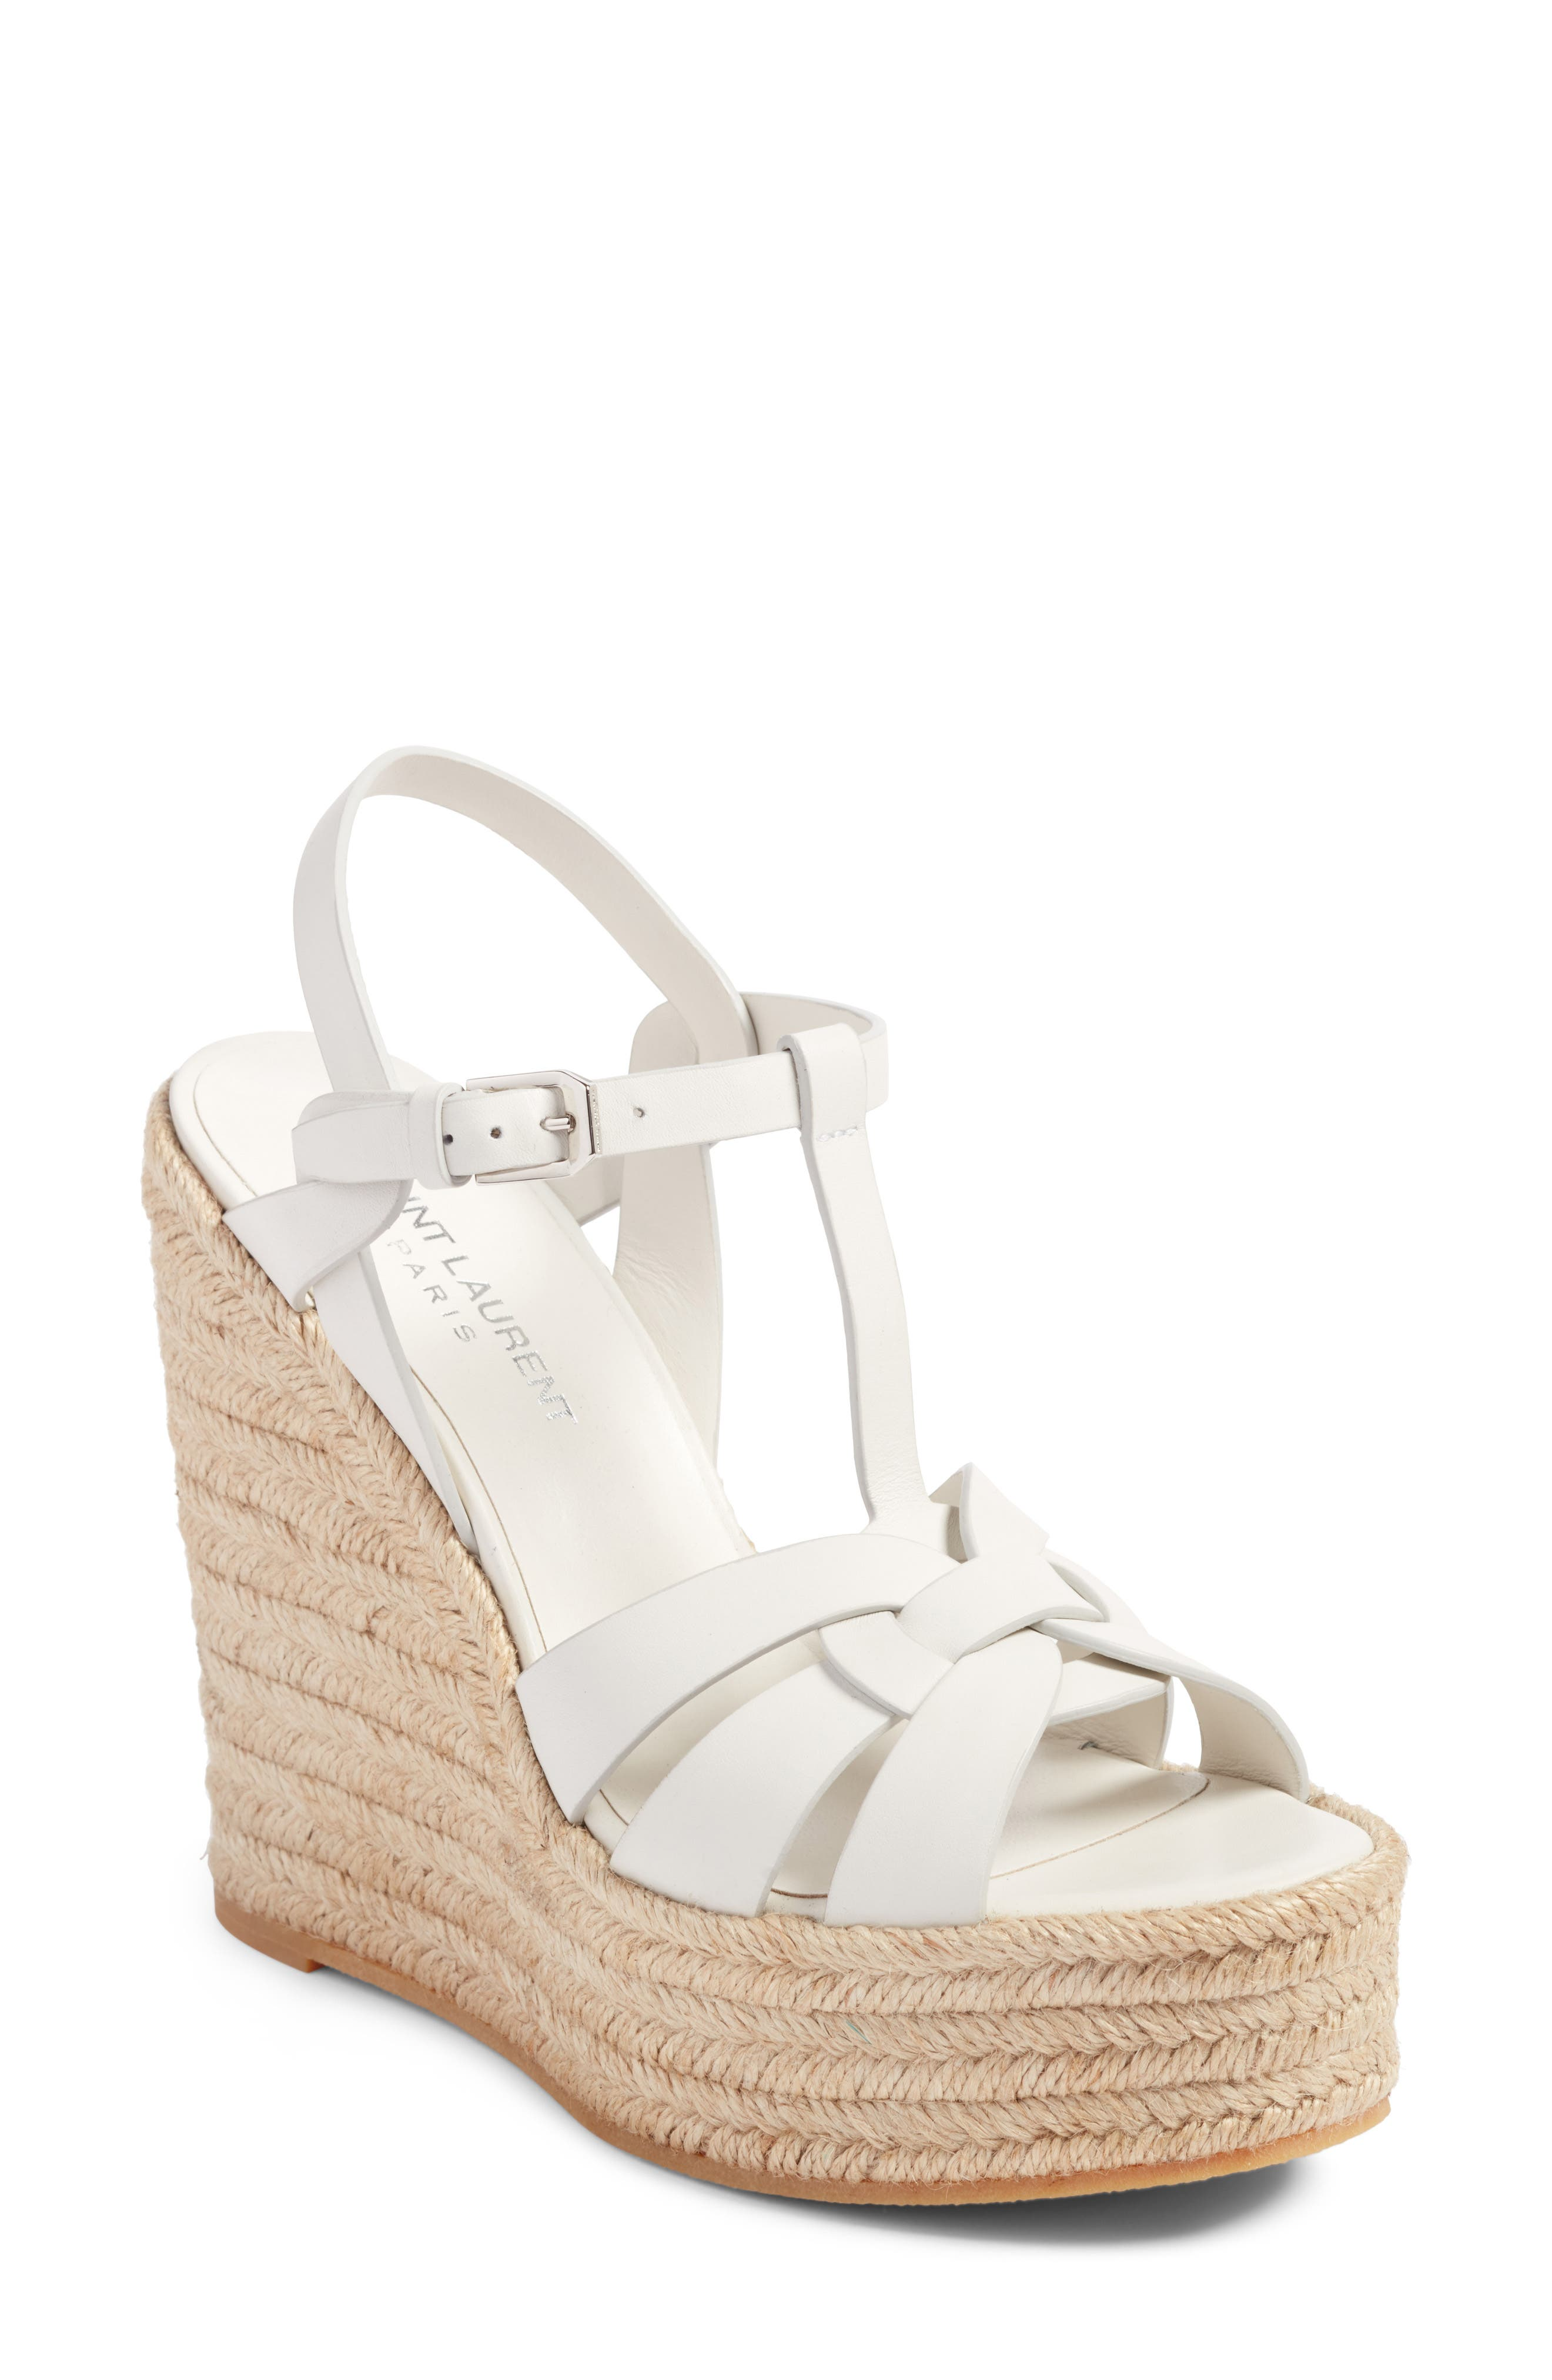 Tribute Espadrille Wedge,                             Main thumbnail 1, color,                             White Leather